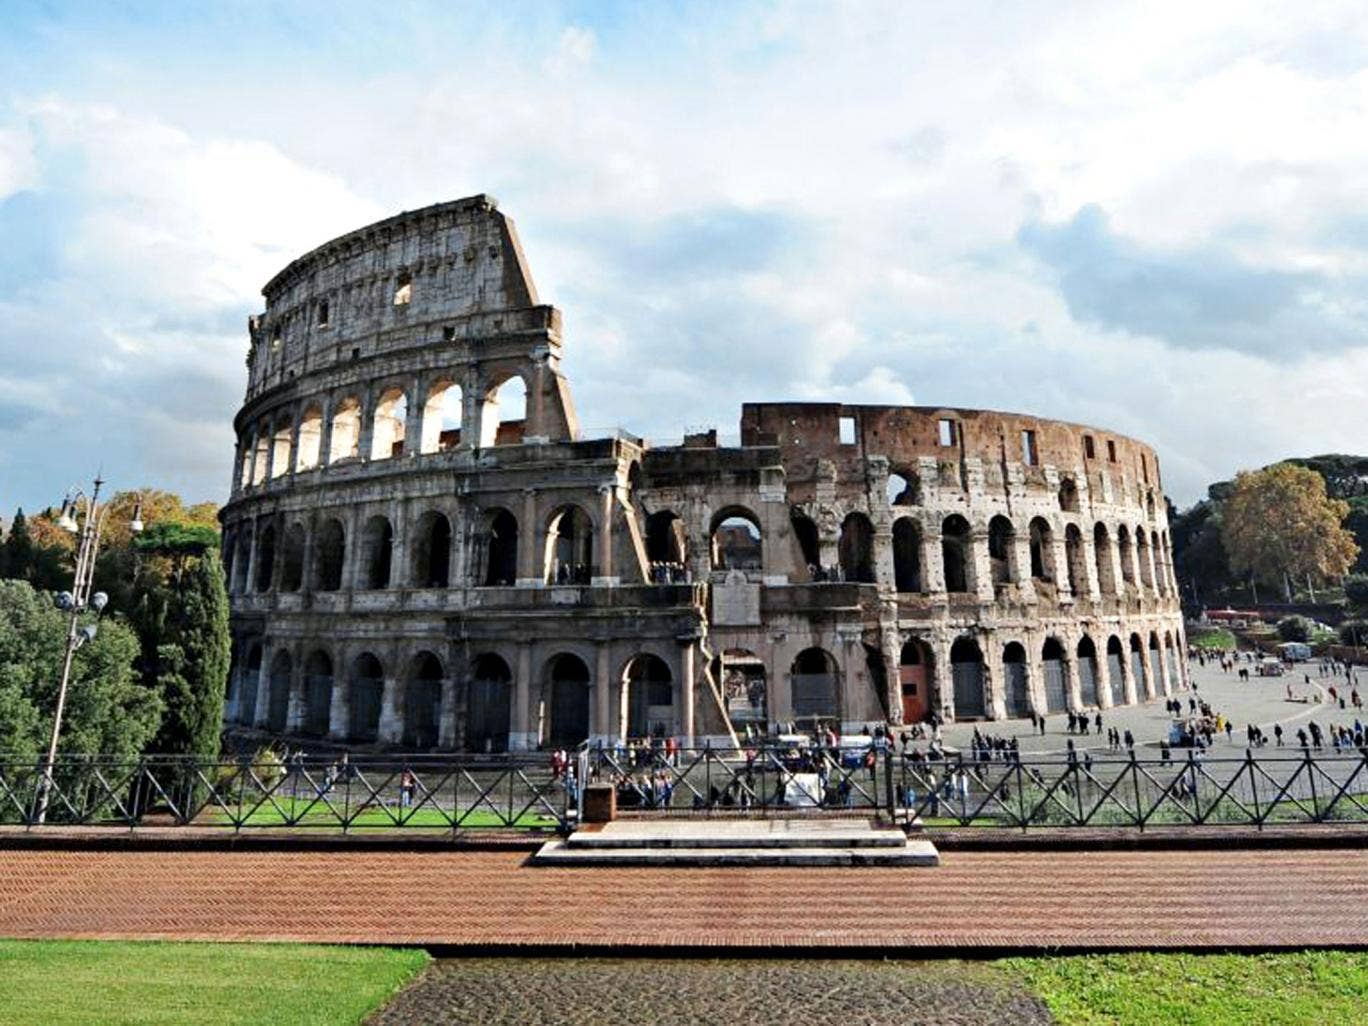 Amazing place: the Colosseum in Rome